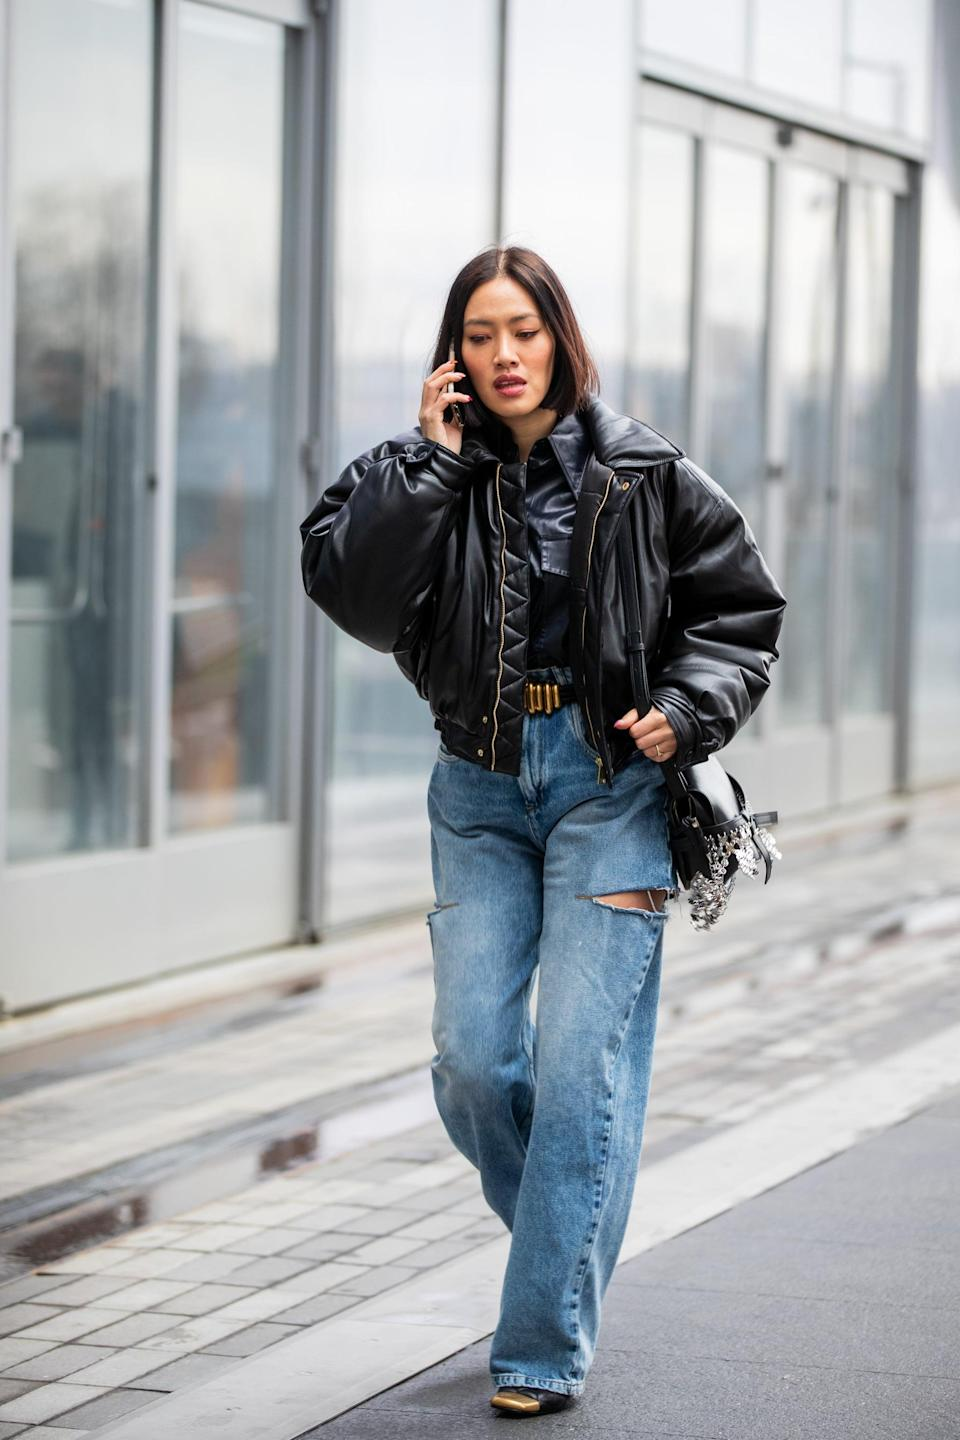 <p>Skater, but make it fashion with a distressed pair of baggy jeans, a leather jacket, and heels. </p>